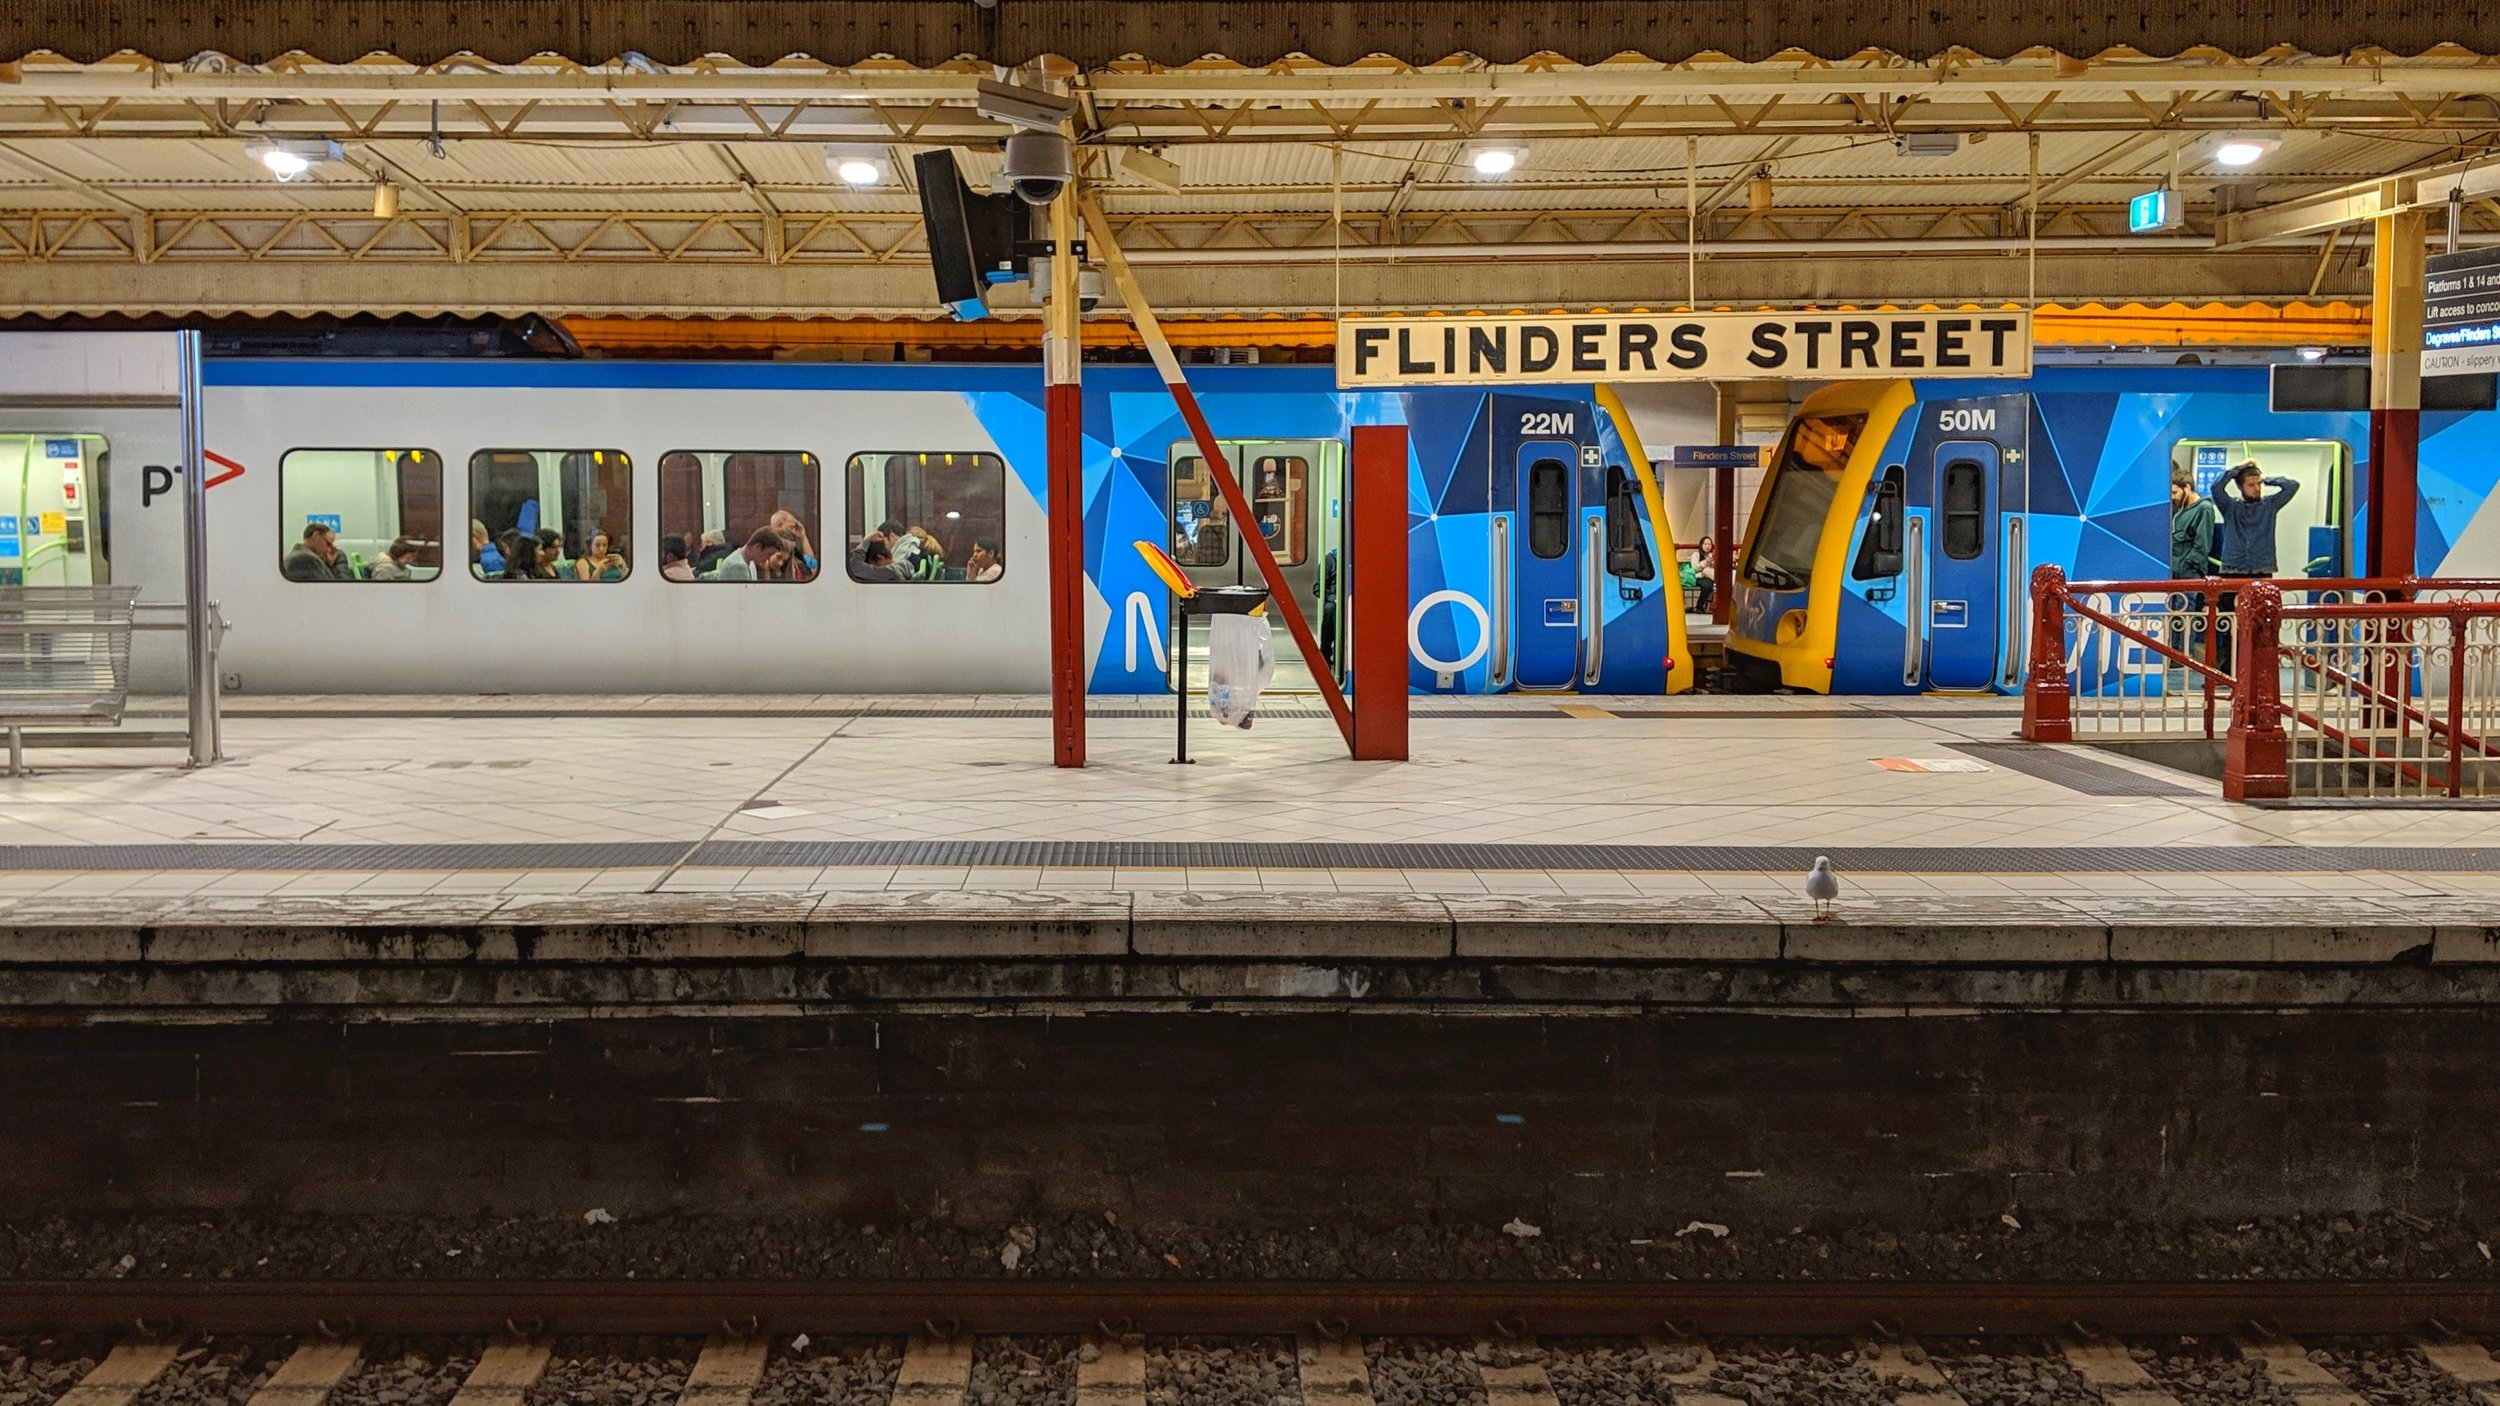 Waiting on a mostly empty platform at Flinders Street station.